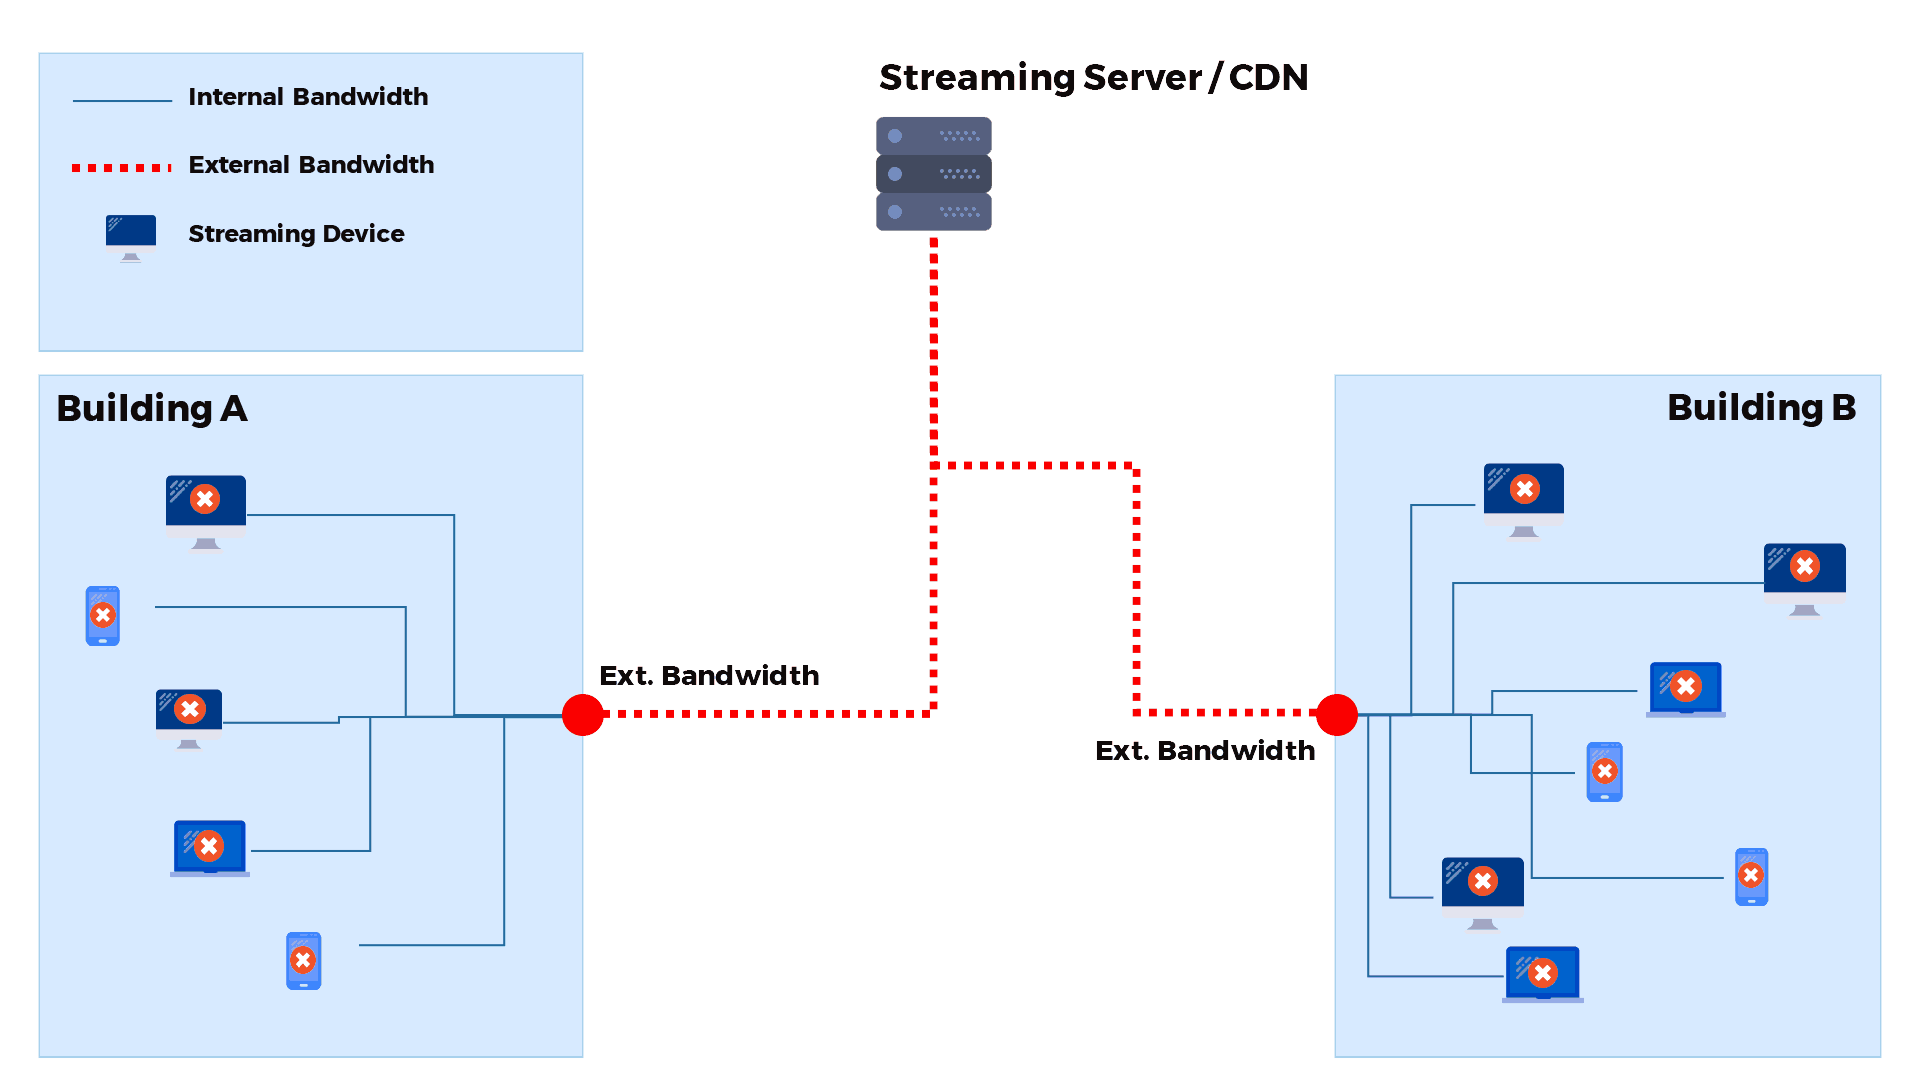 Intranet Livestreaming - Diagramm ohne Peer to Peer